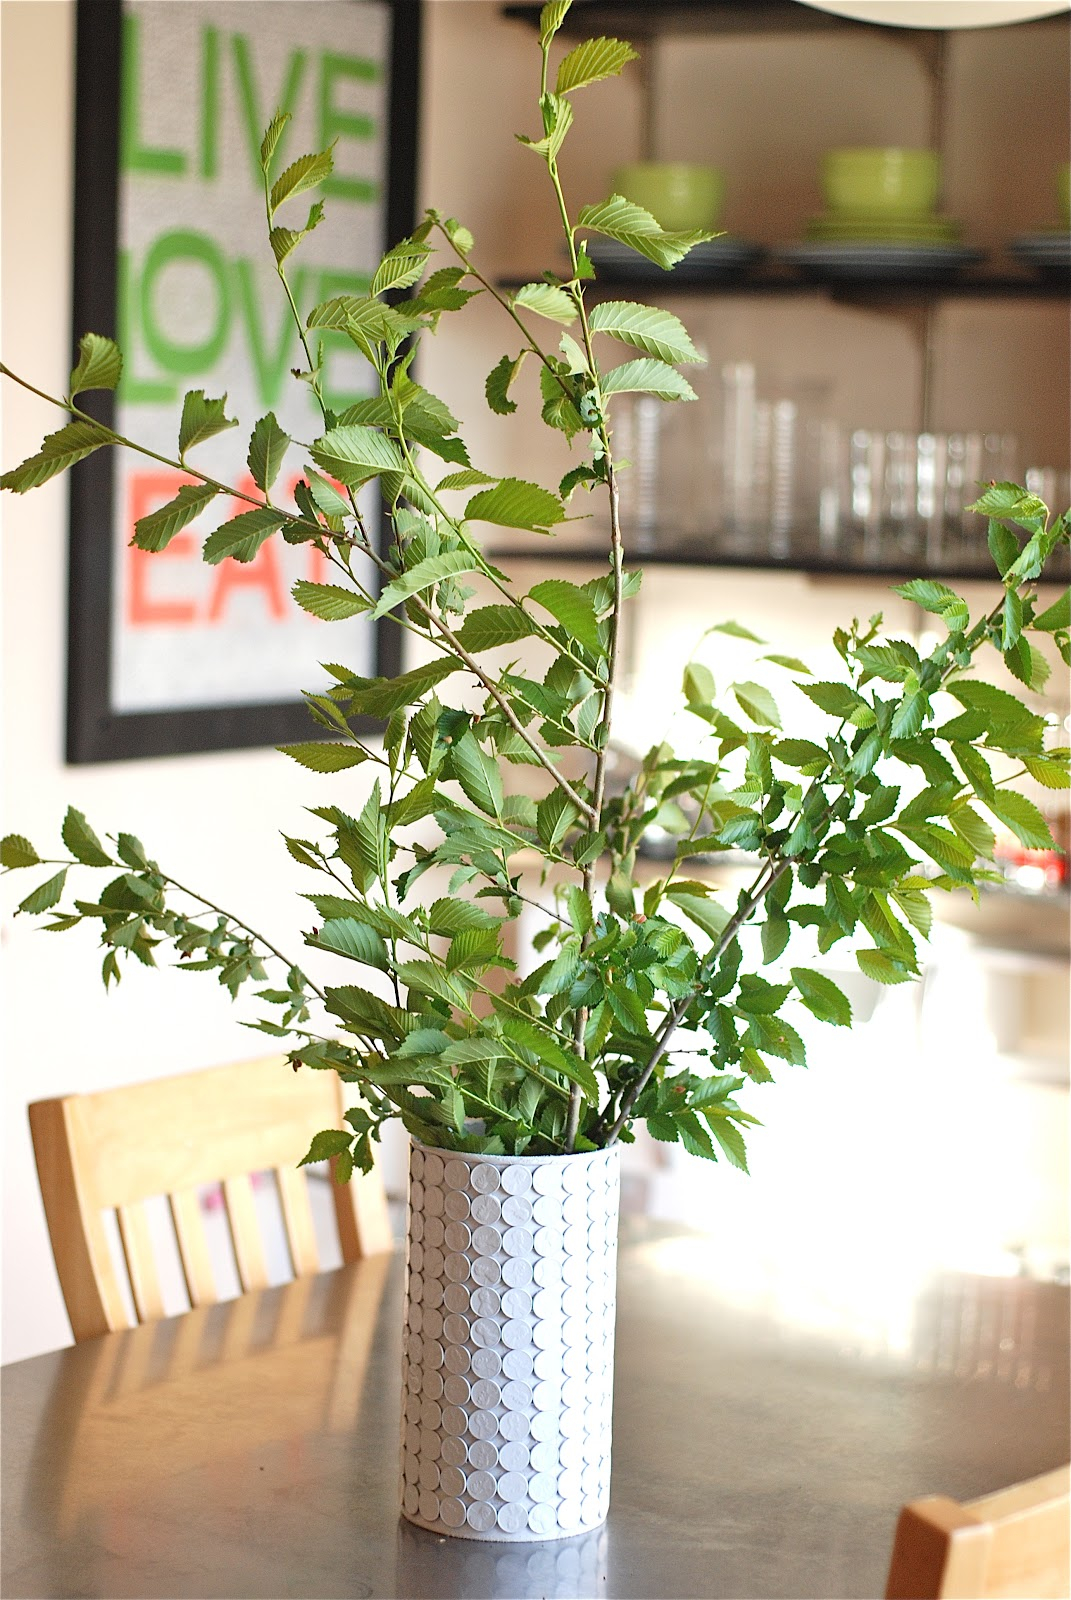 White penny vase Remarkable DIY Decoration Ideas You Can Make At Home With Pennies